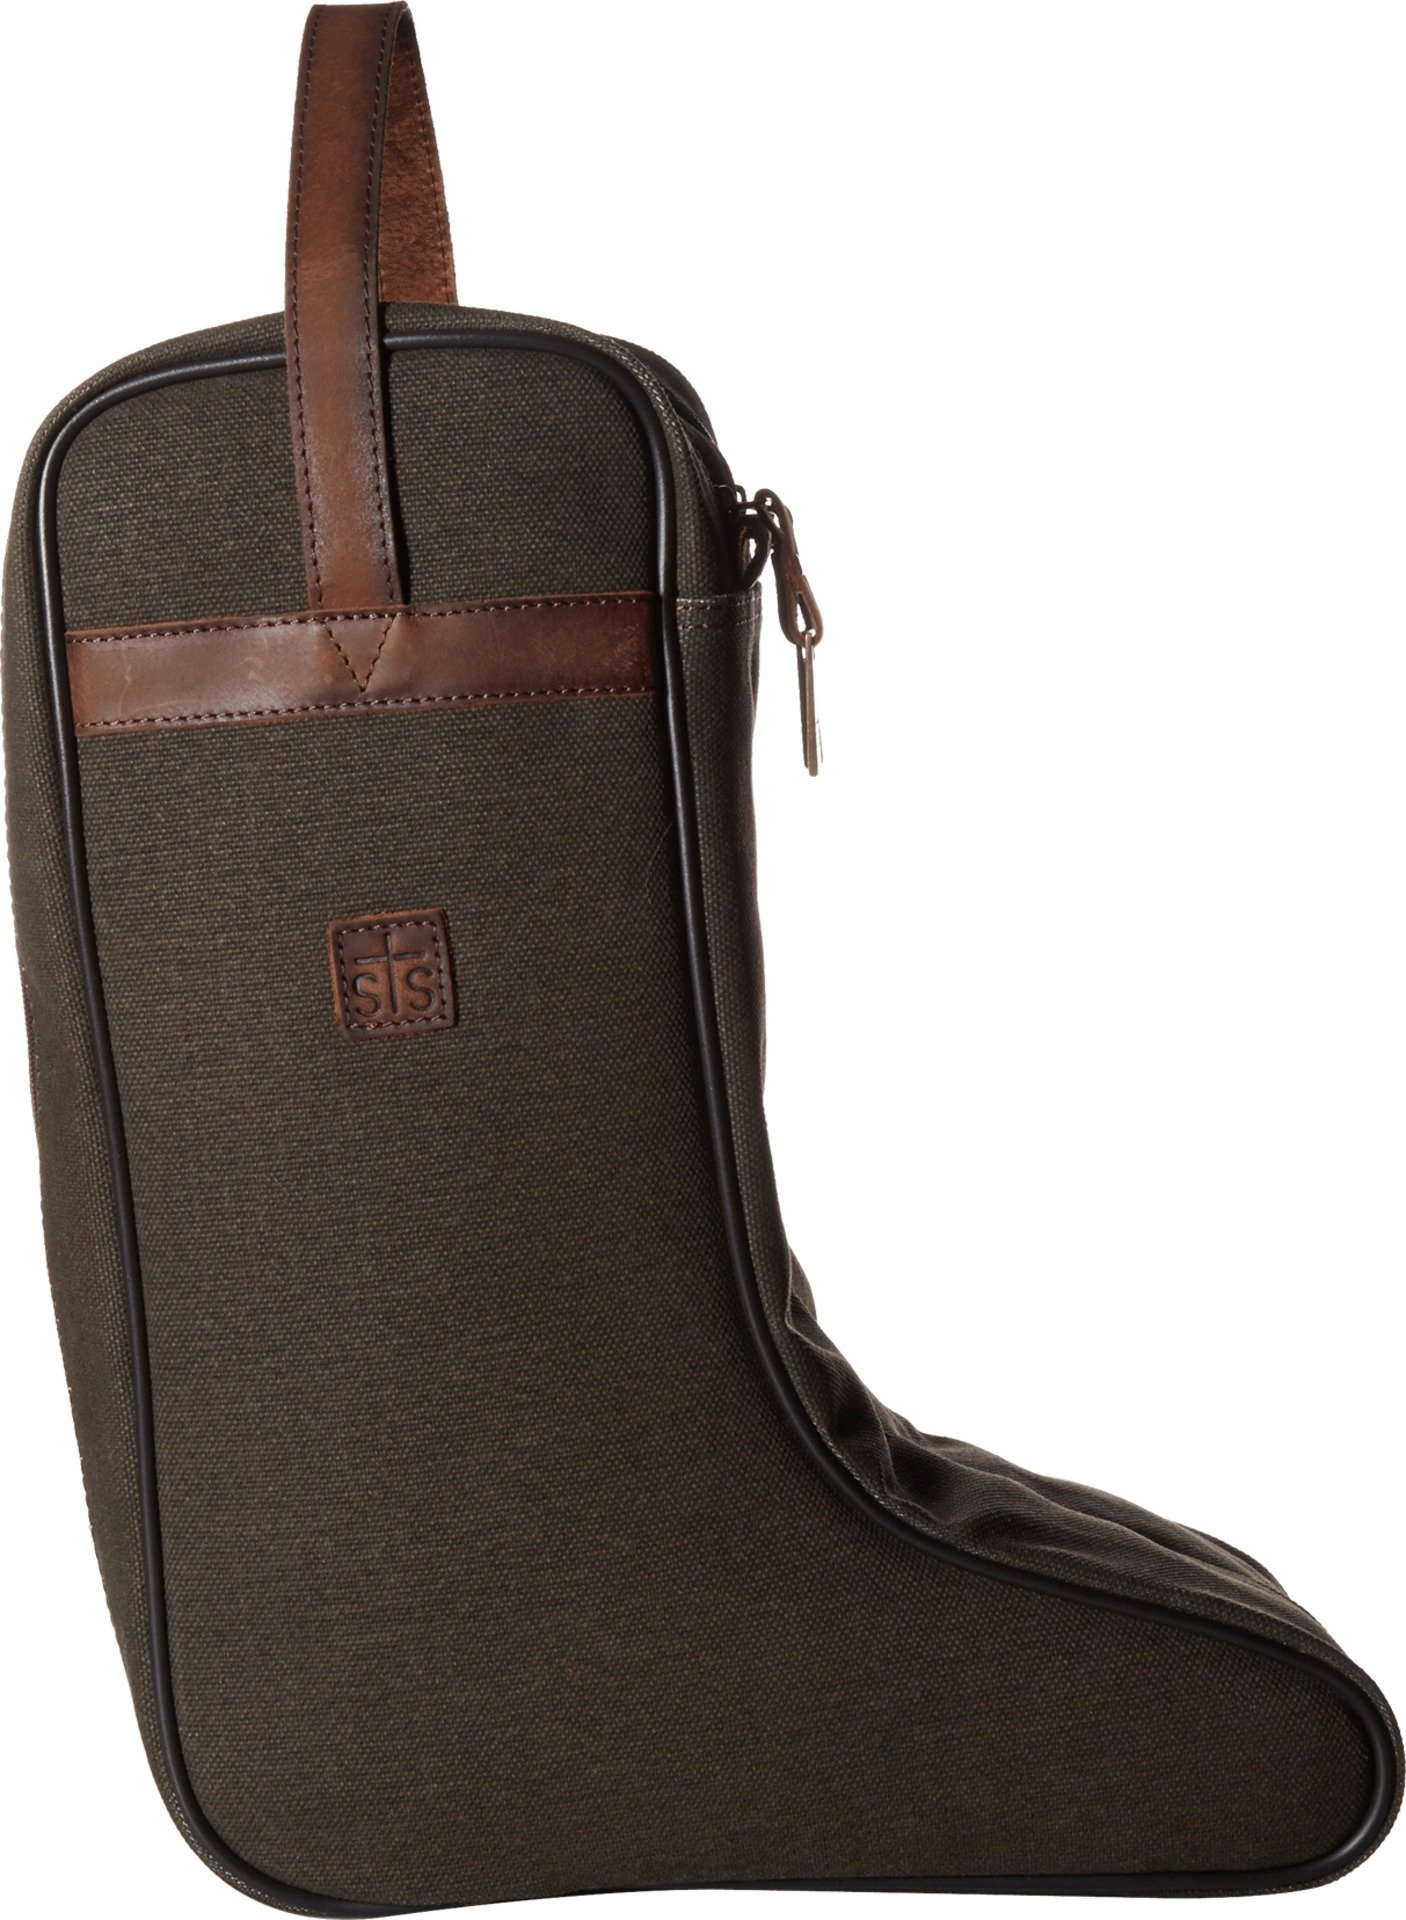 STS Ranchwear Unisex STS Boot Bag Dark Canvas One Size